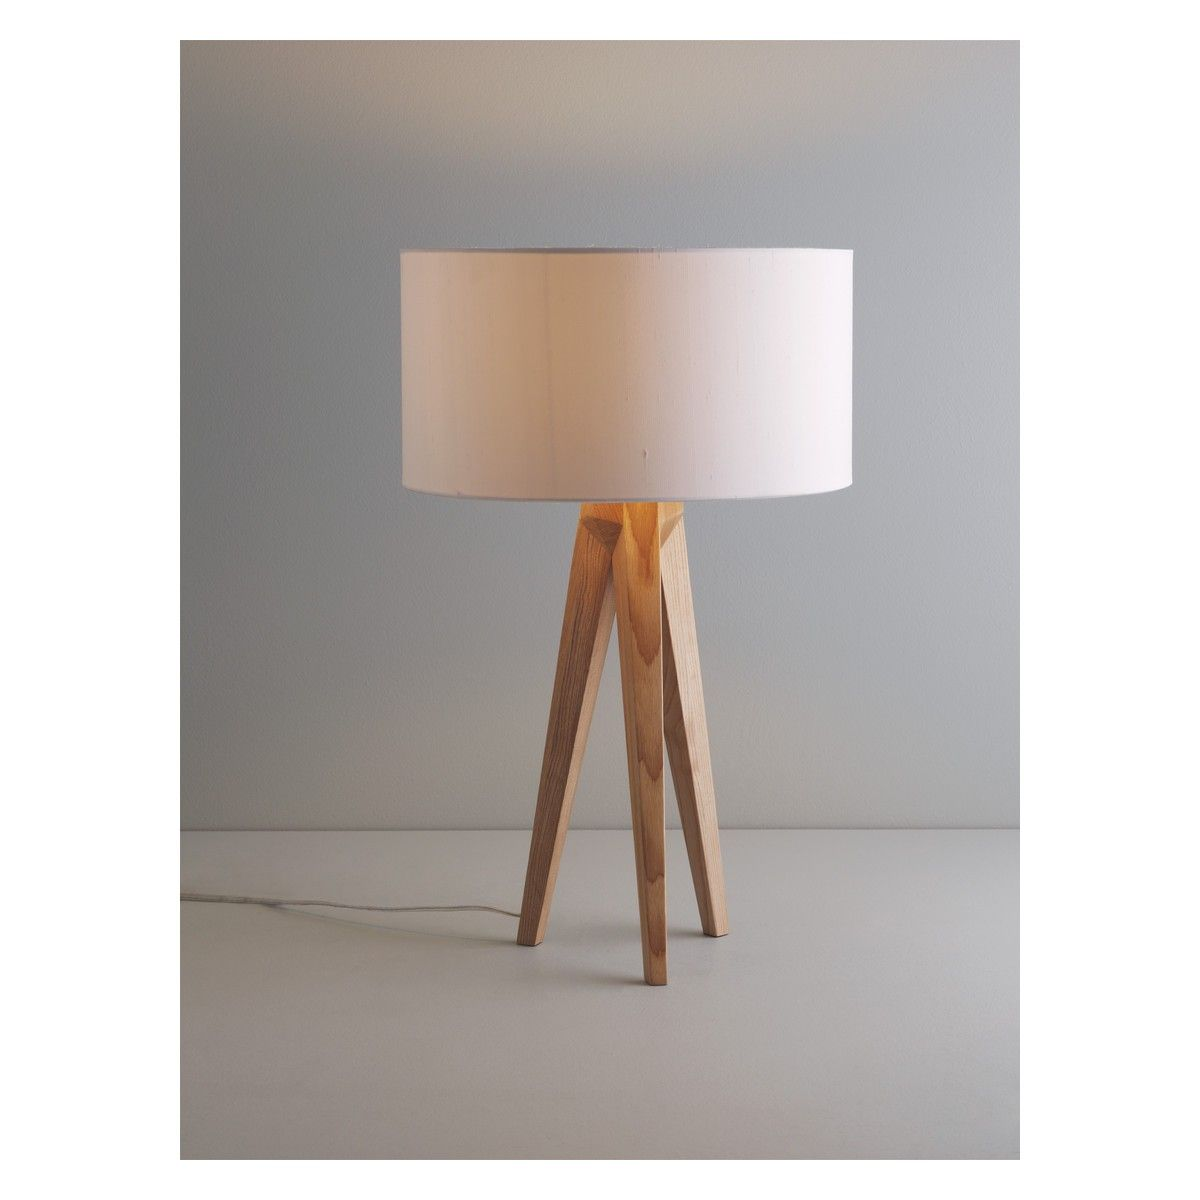 Tripod Ash Wooden Tripod Table Lamp Base Buy Now At Habitat Uk